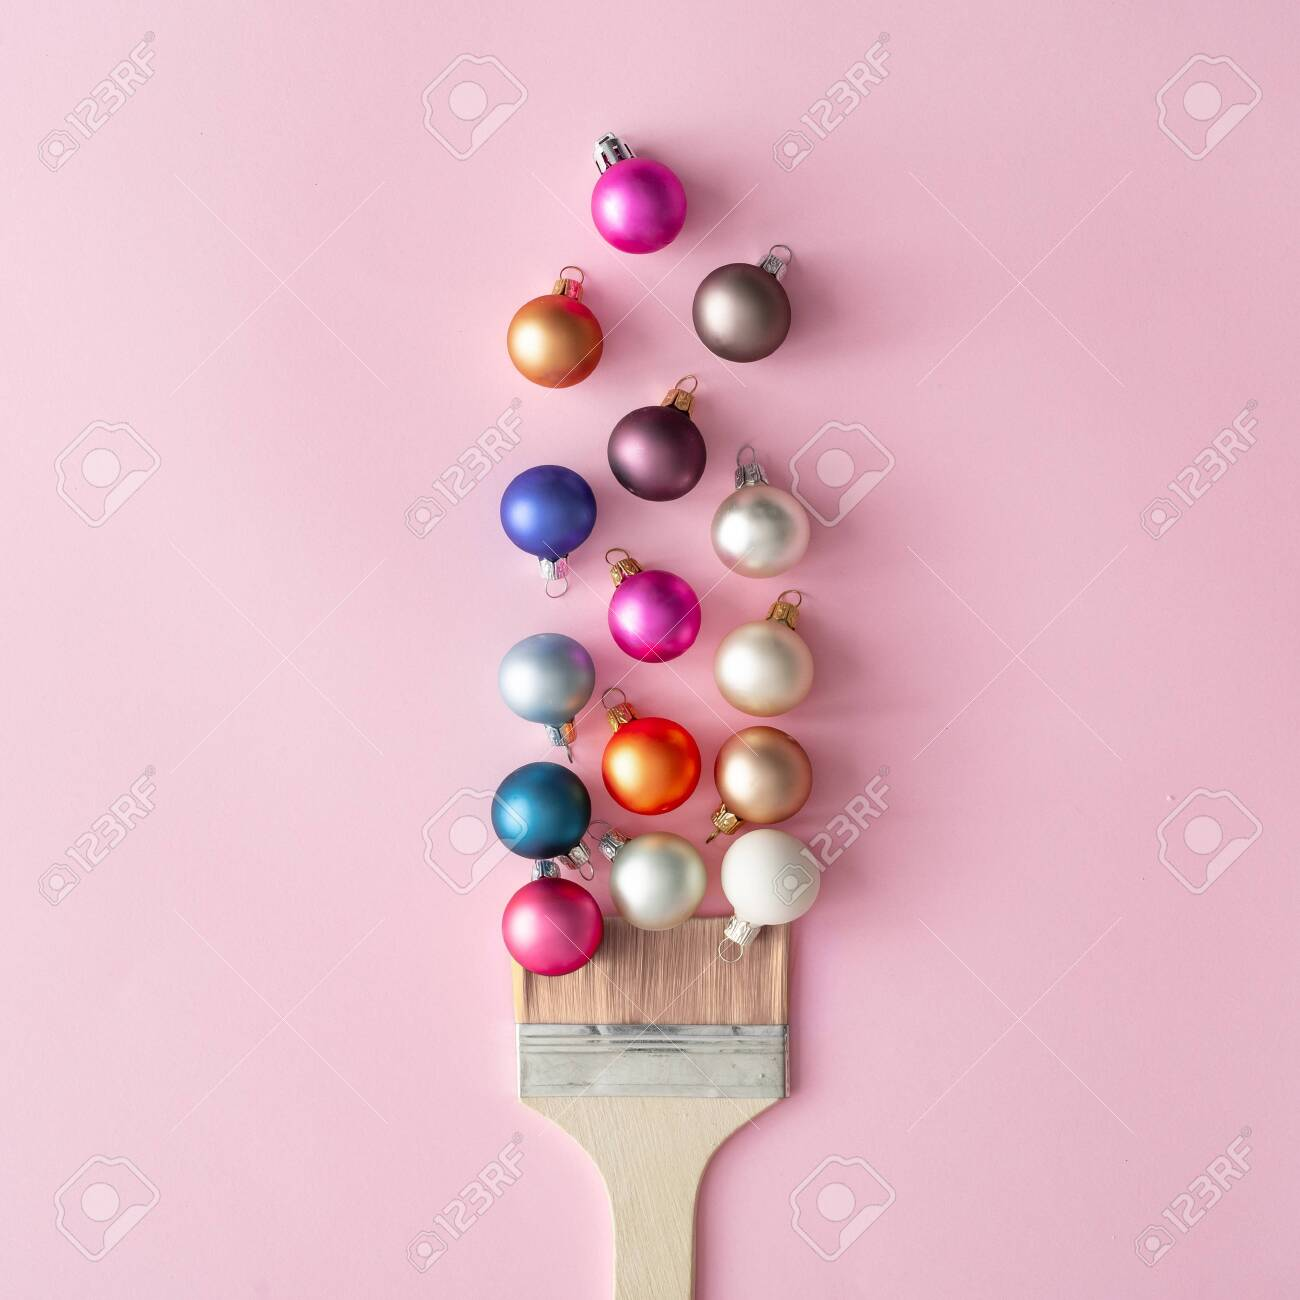 Pastel Christmas Ornaments.Paint Brush With Christmas Ornaments On Pastel Pink Table Minimal